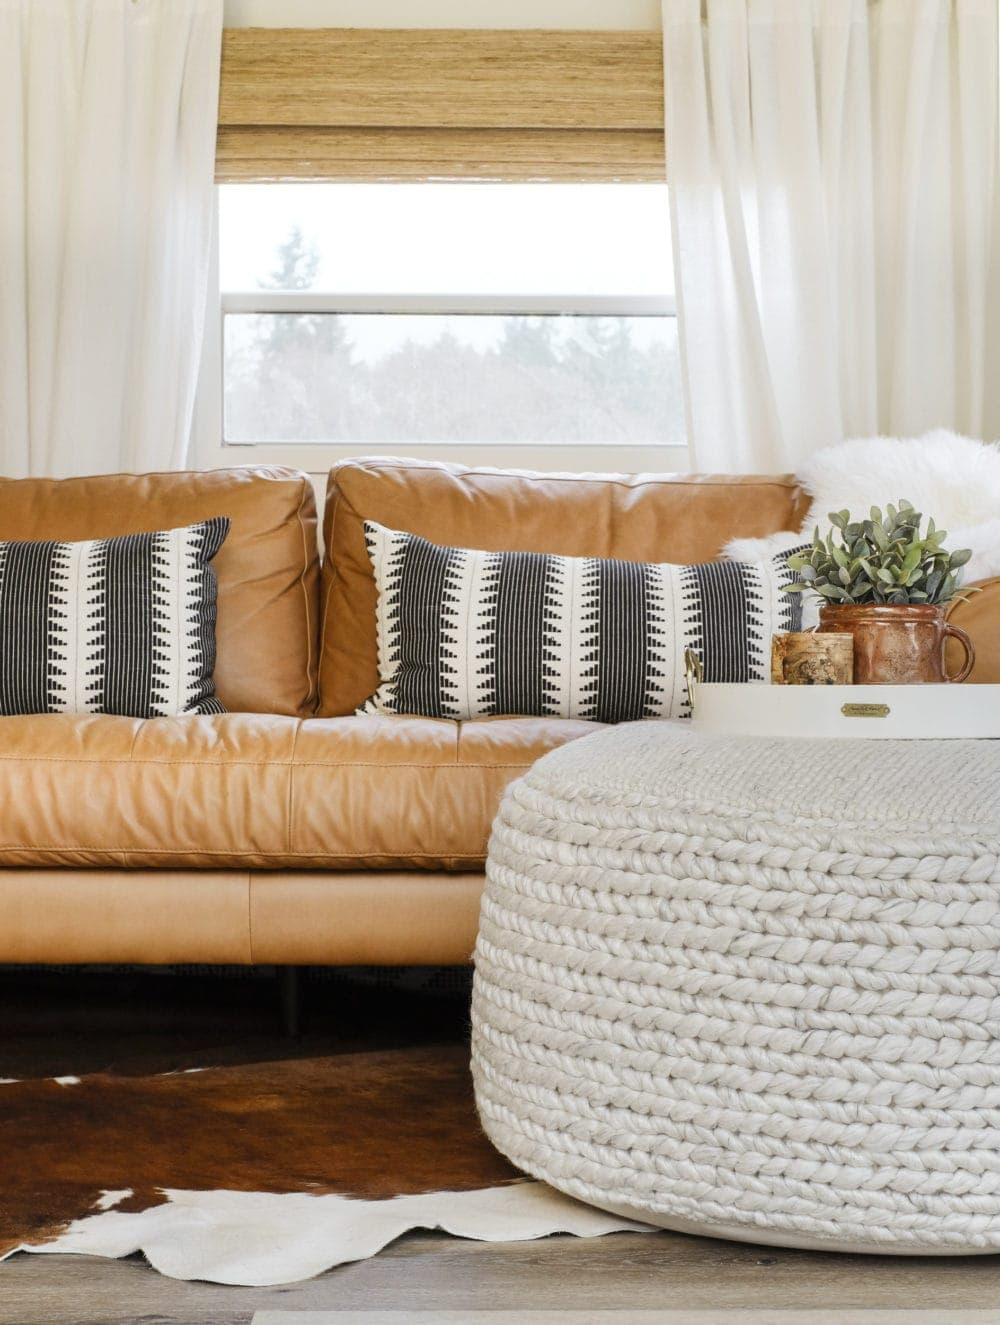 Floor pouf for living room in front of a leather sofa with a decorative tray on top